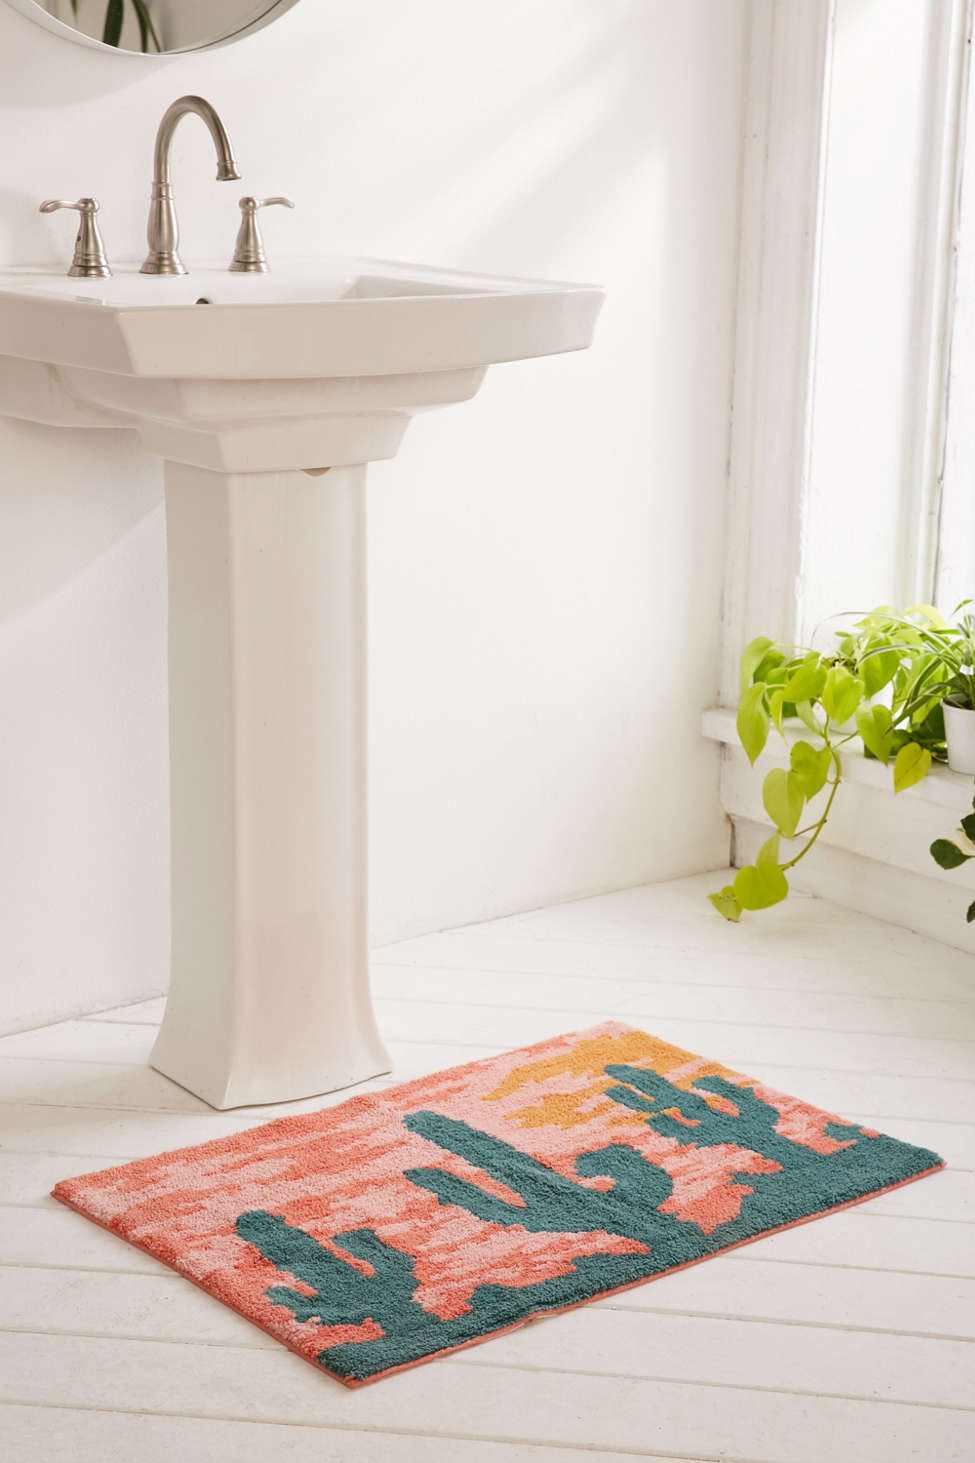 Slide View: 1: Desert Sunset Bath Mat